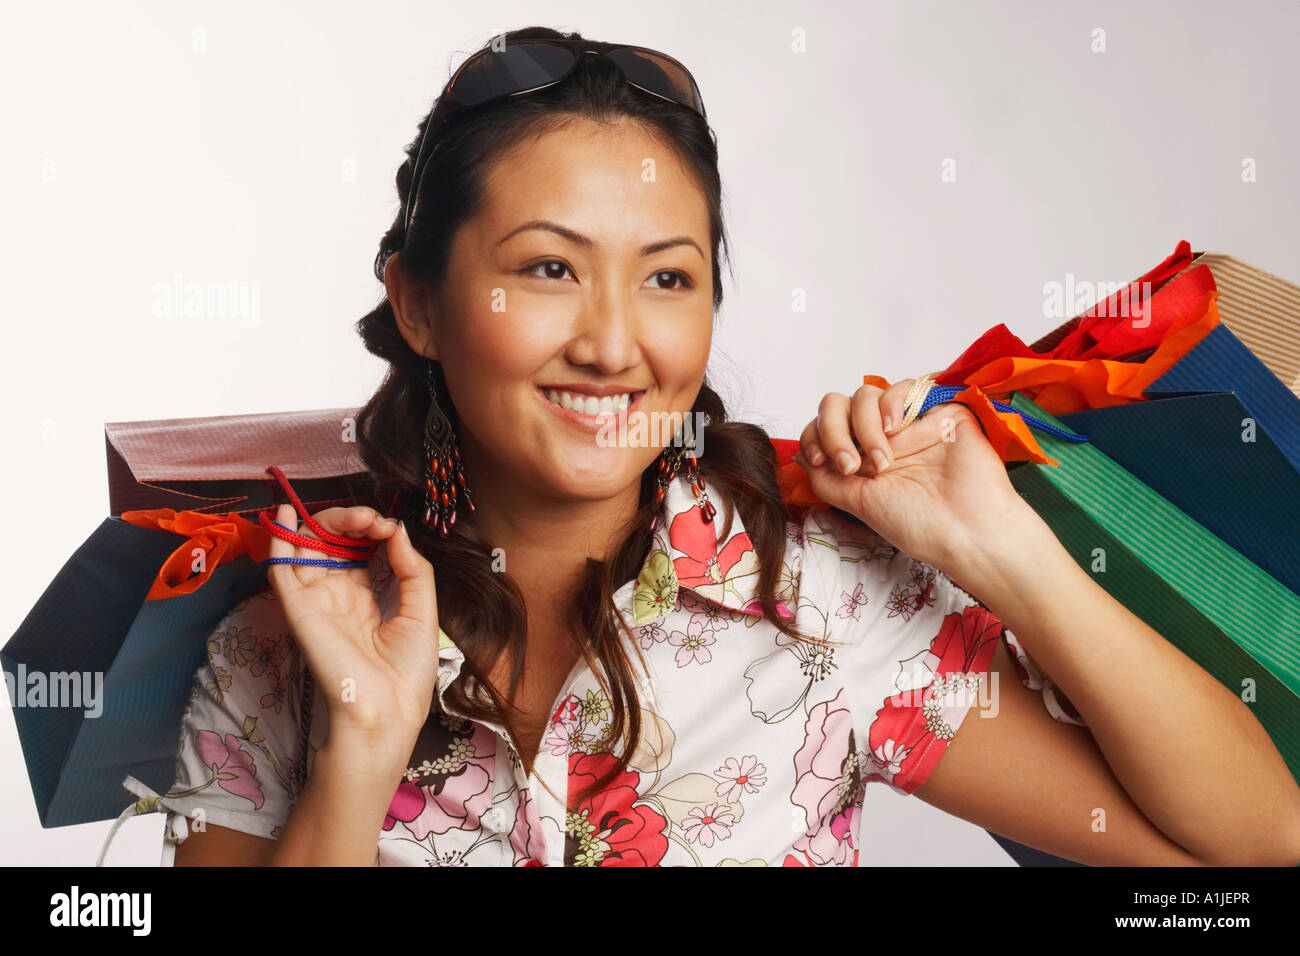 Close-up of a young woman carrying shopping bags and smiling - Stock Image